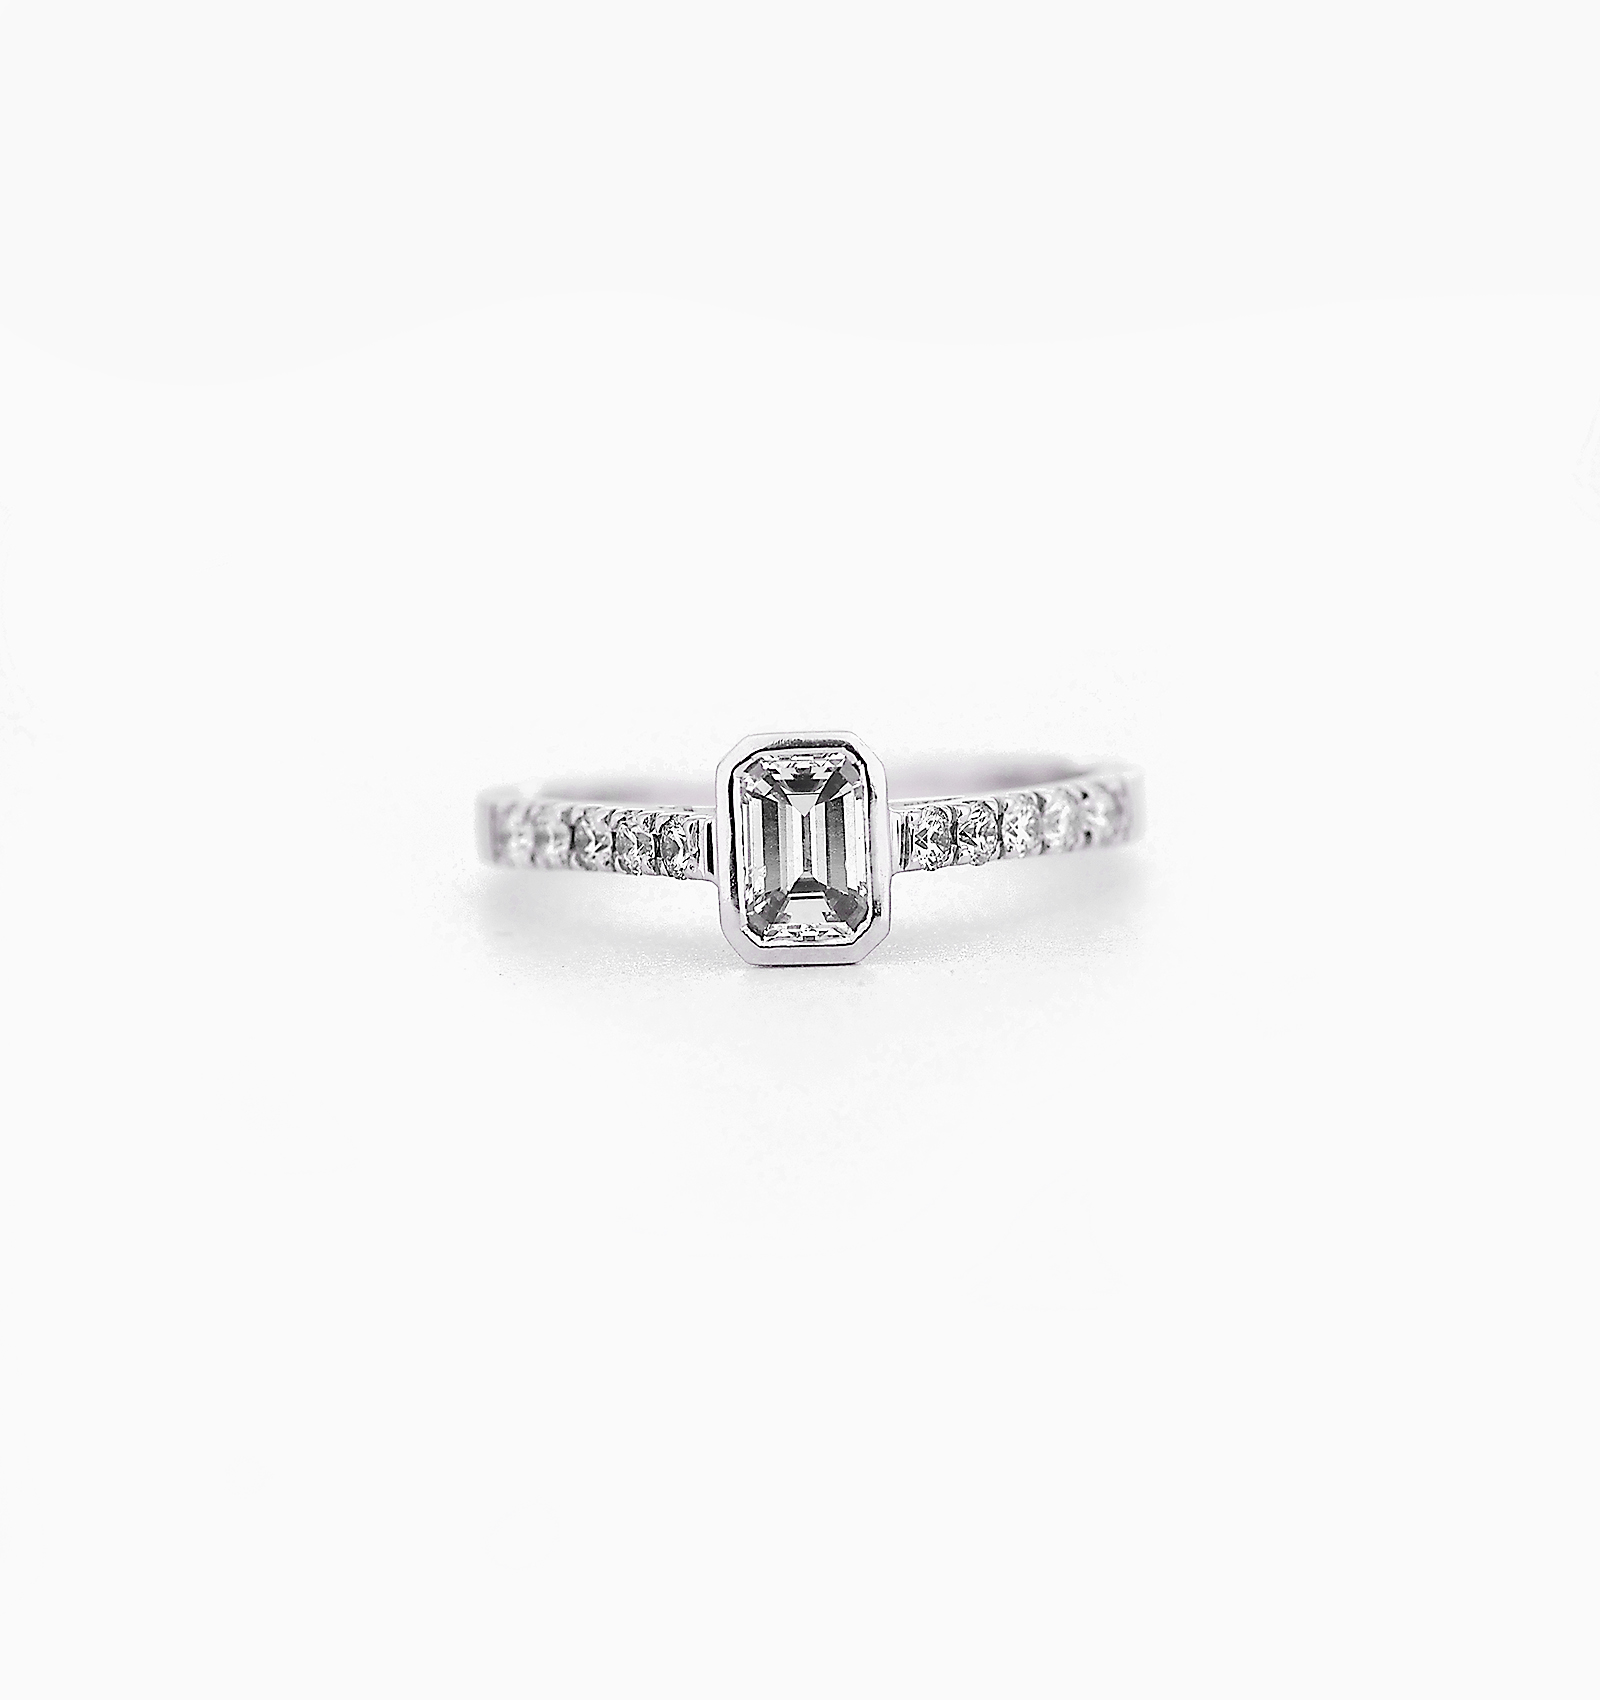 in rings ring diamond engagement product face gh round ct white solitaire gold vs